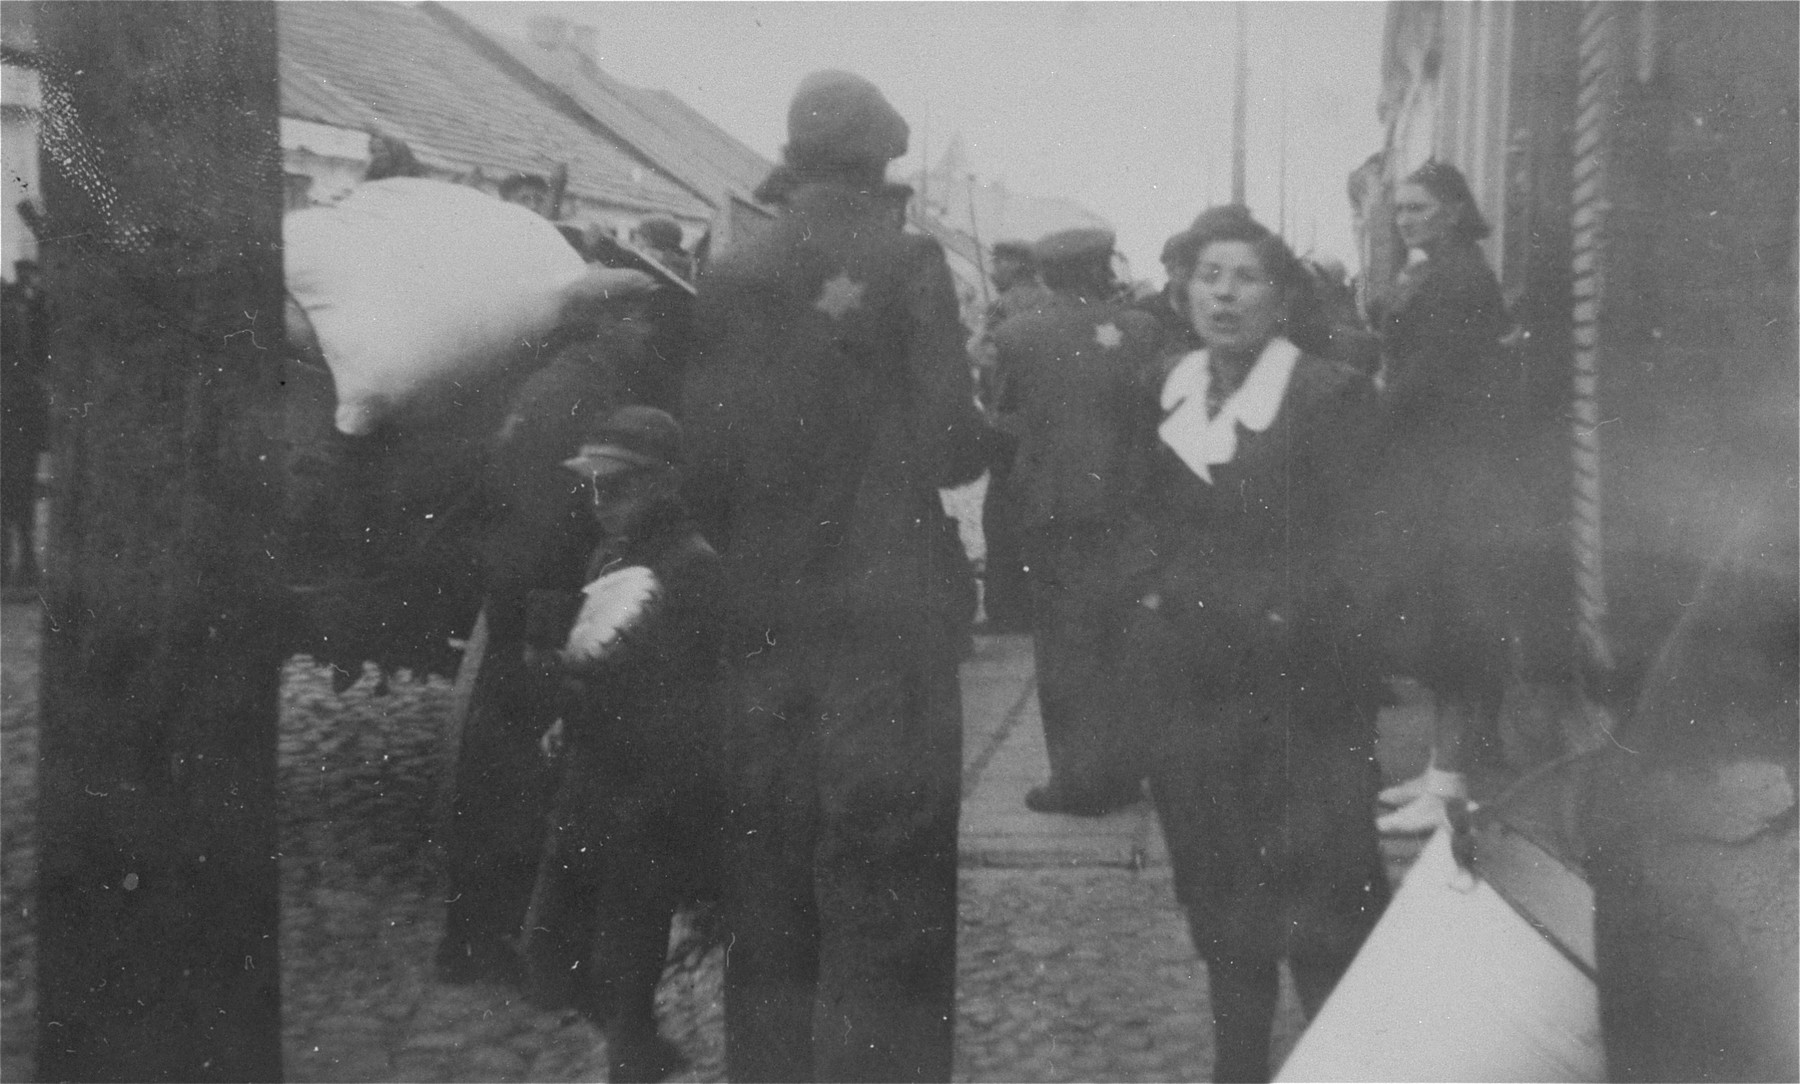 Jews stand on Pabianicka Street in Belchatow during a resettlement or deportation action.